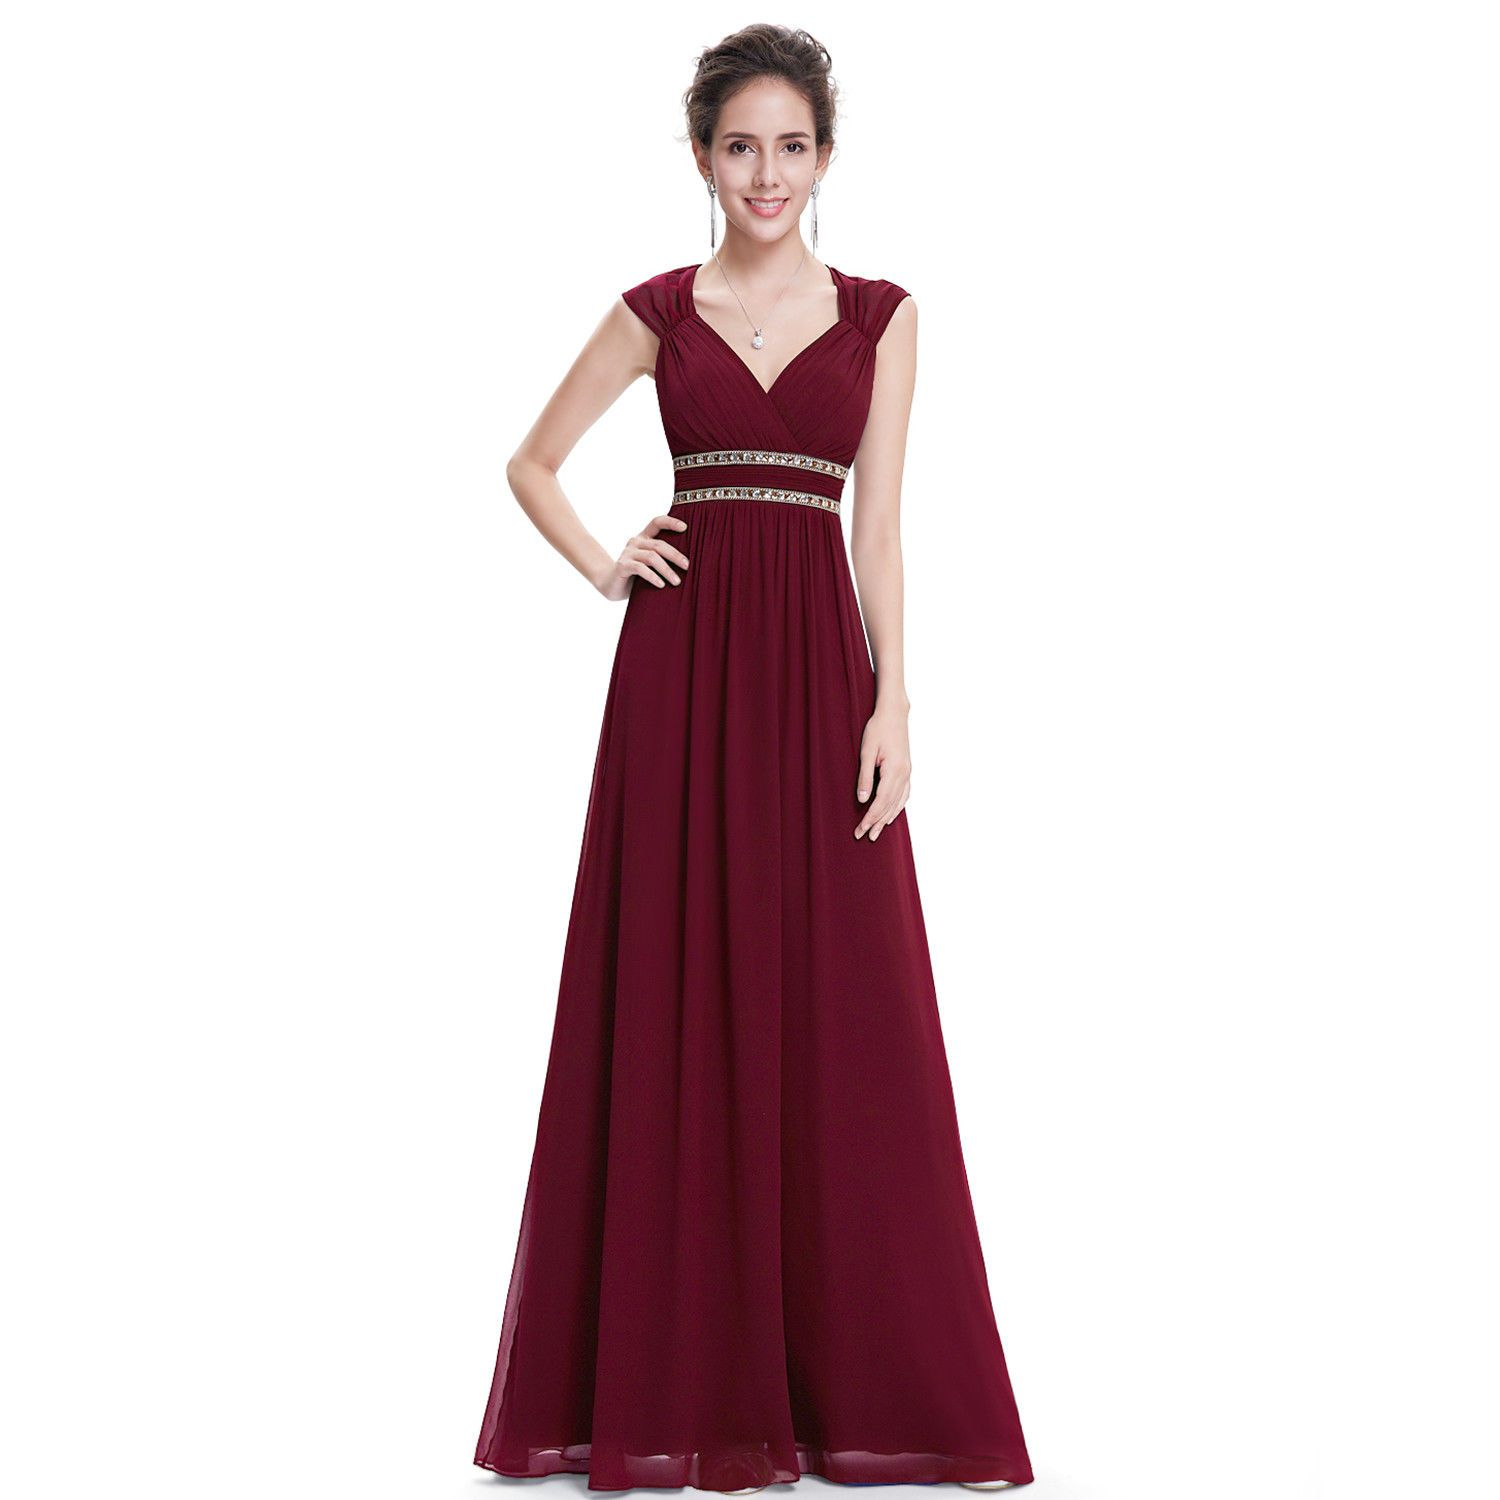 Awesome great women bridesmaid evening prom gown dress ever